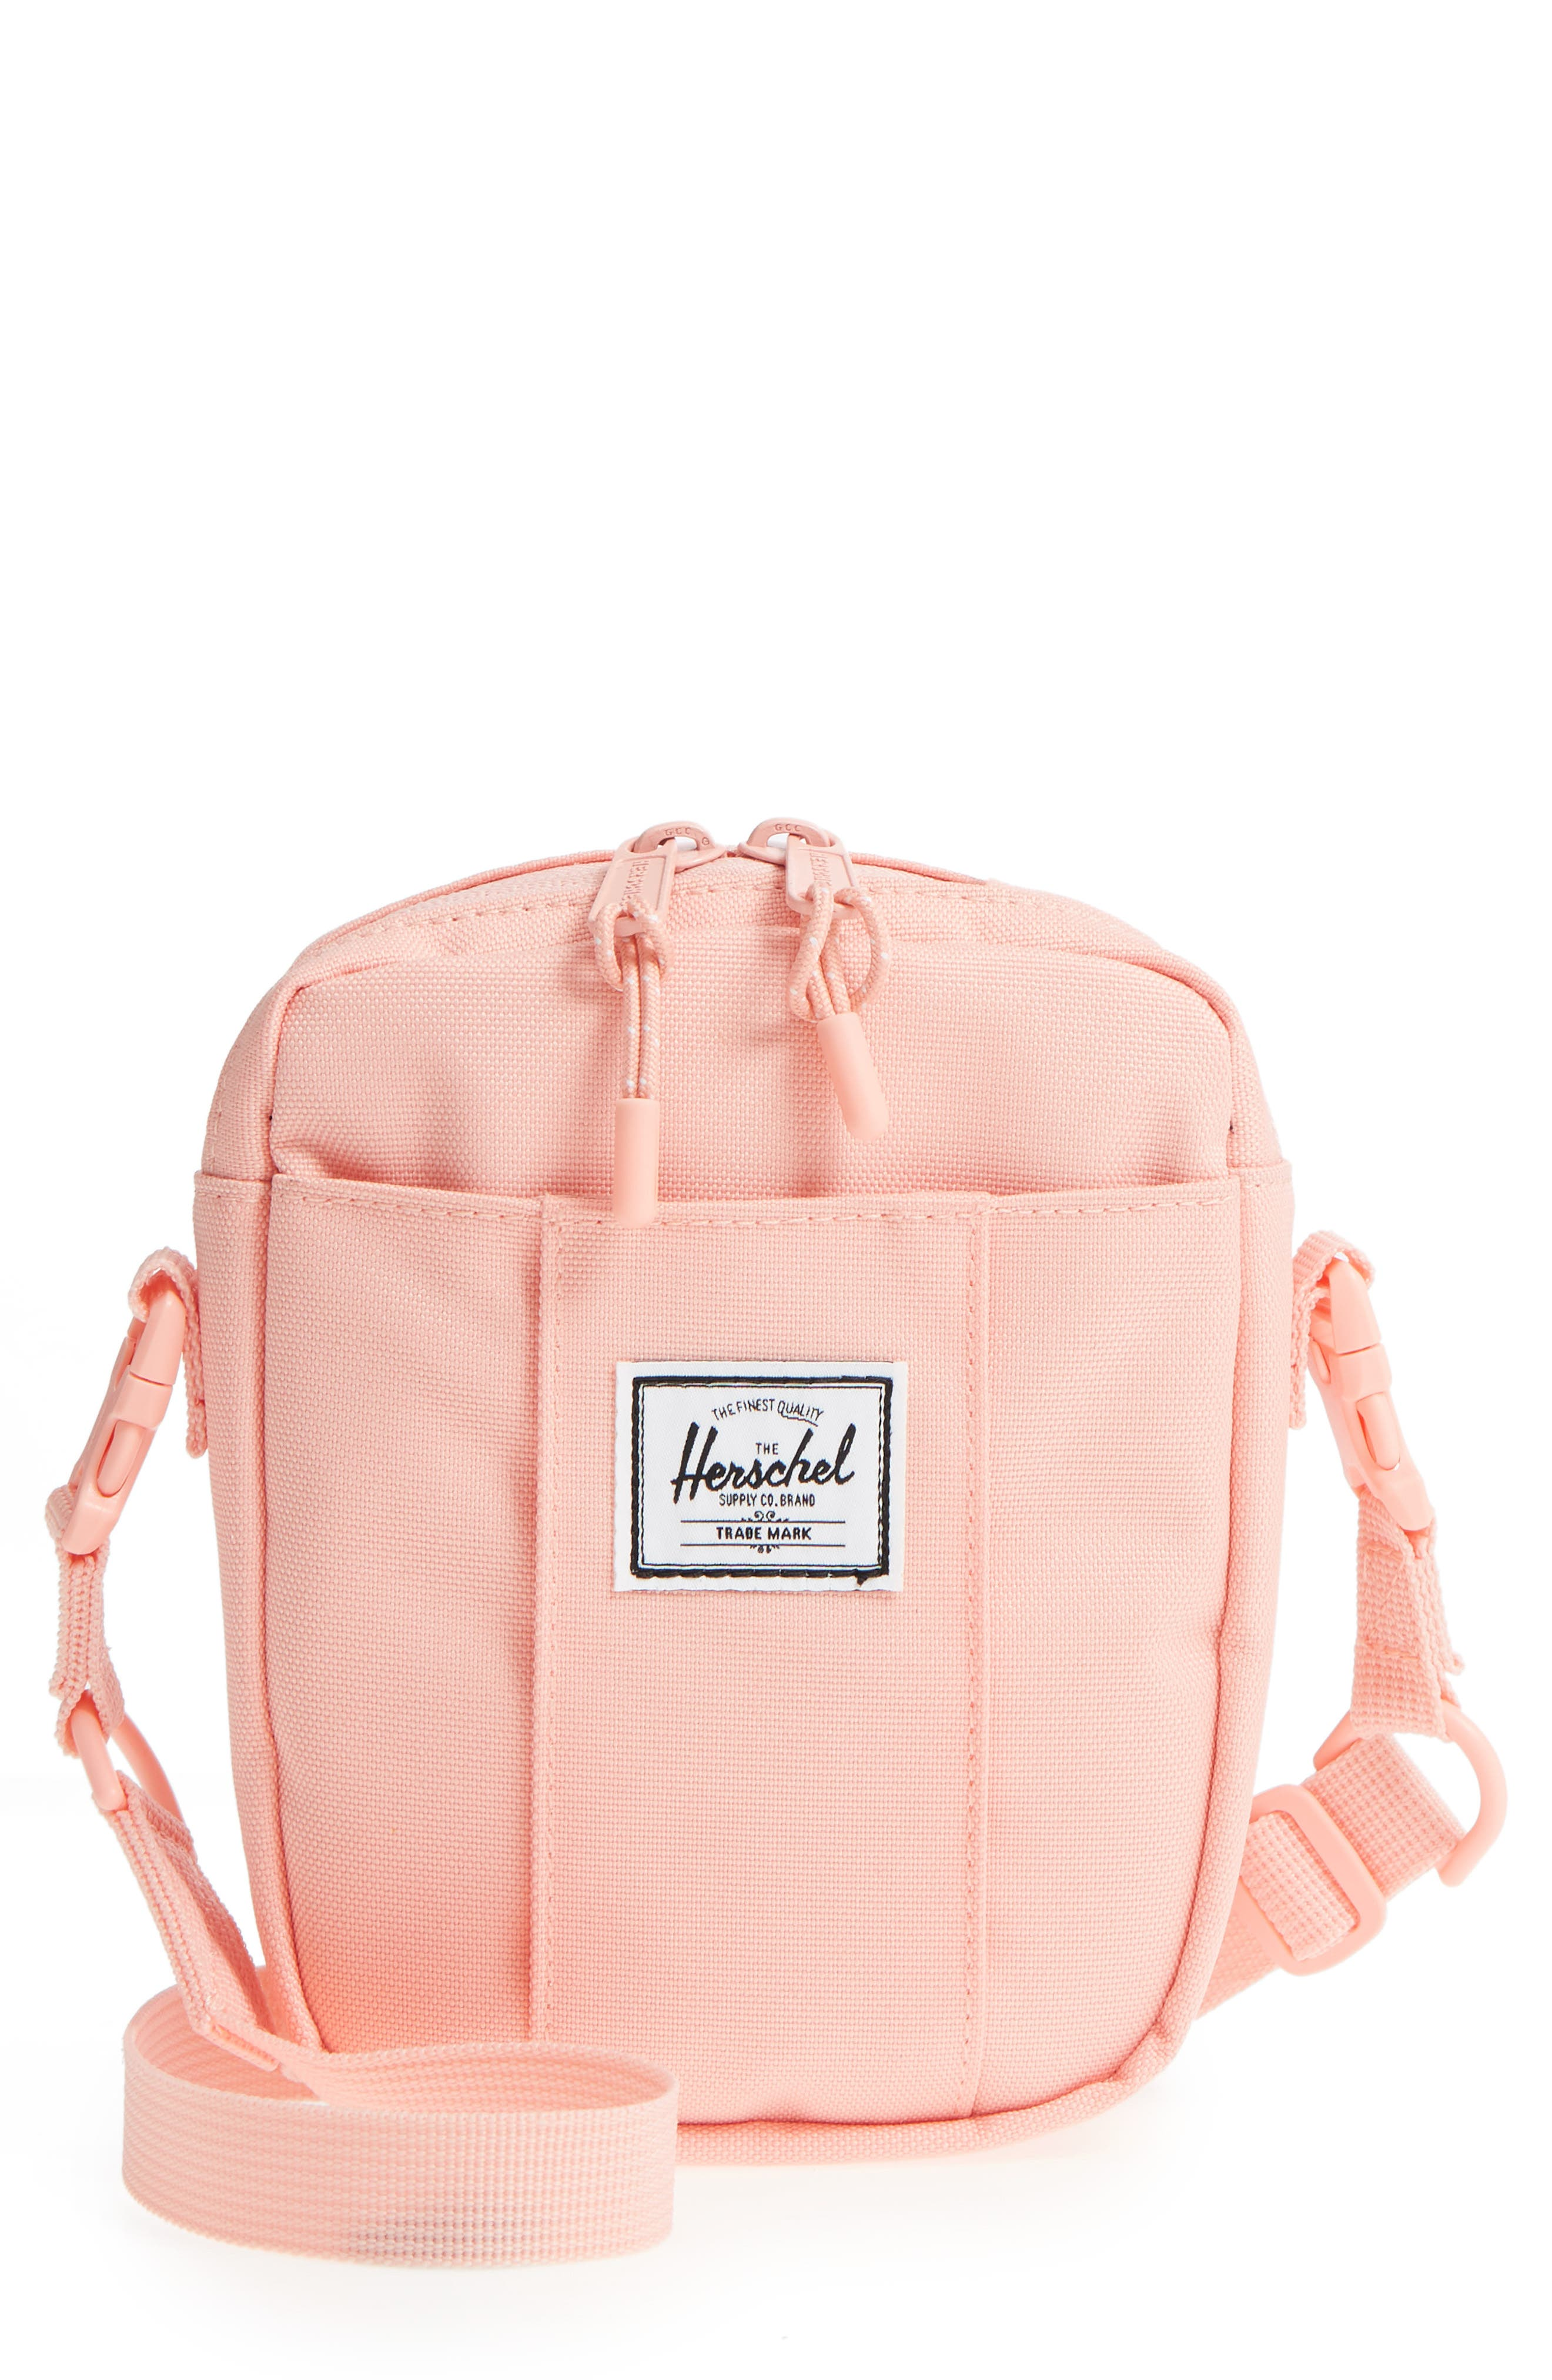 HERSCHEL SUPPLY CO. CRUZ CROSSBODY BAG - PINK 9447890fc6f8d